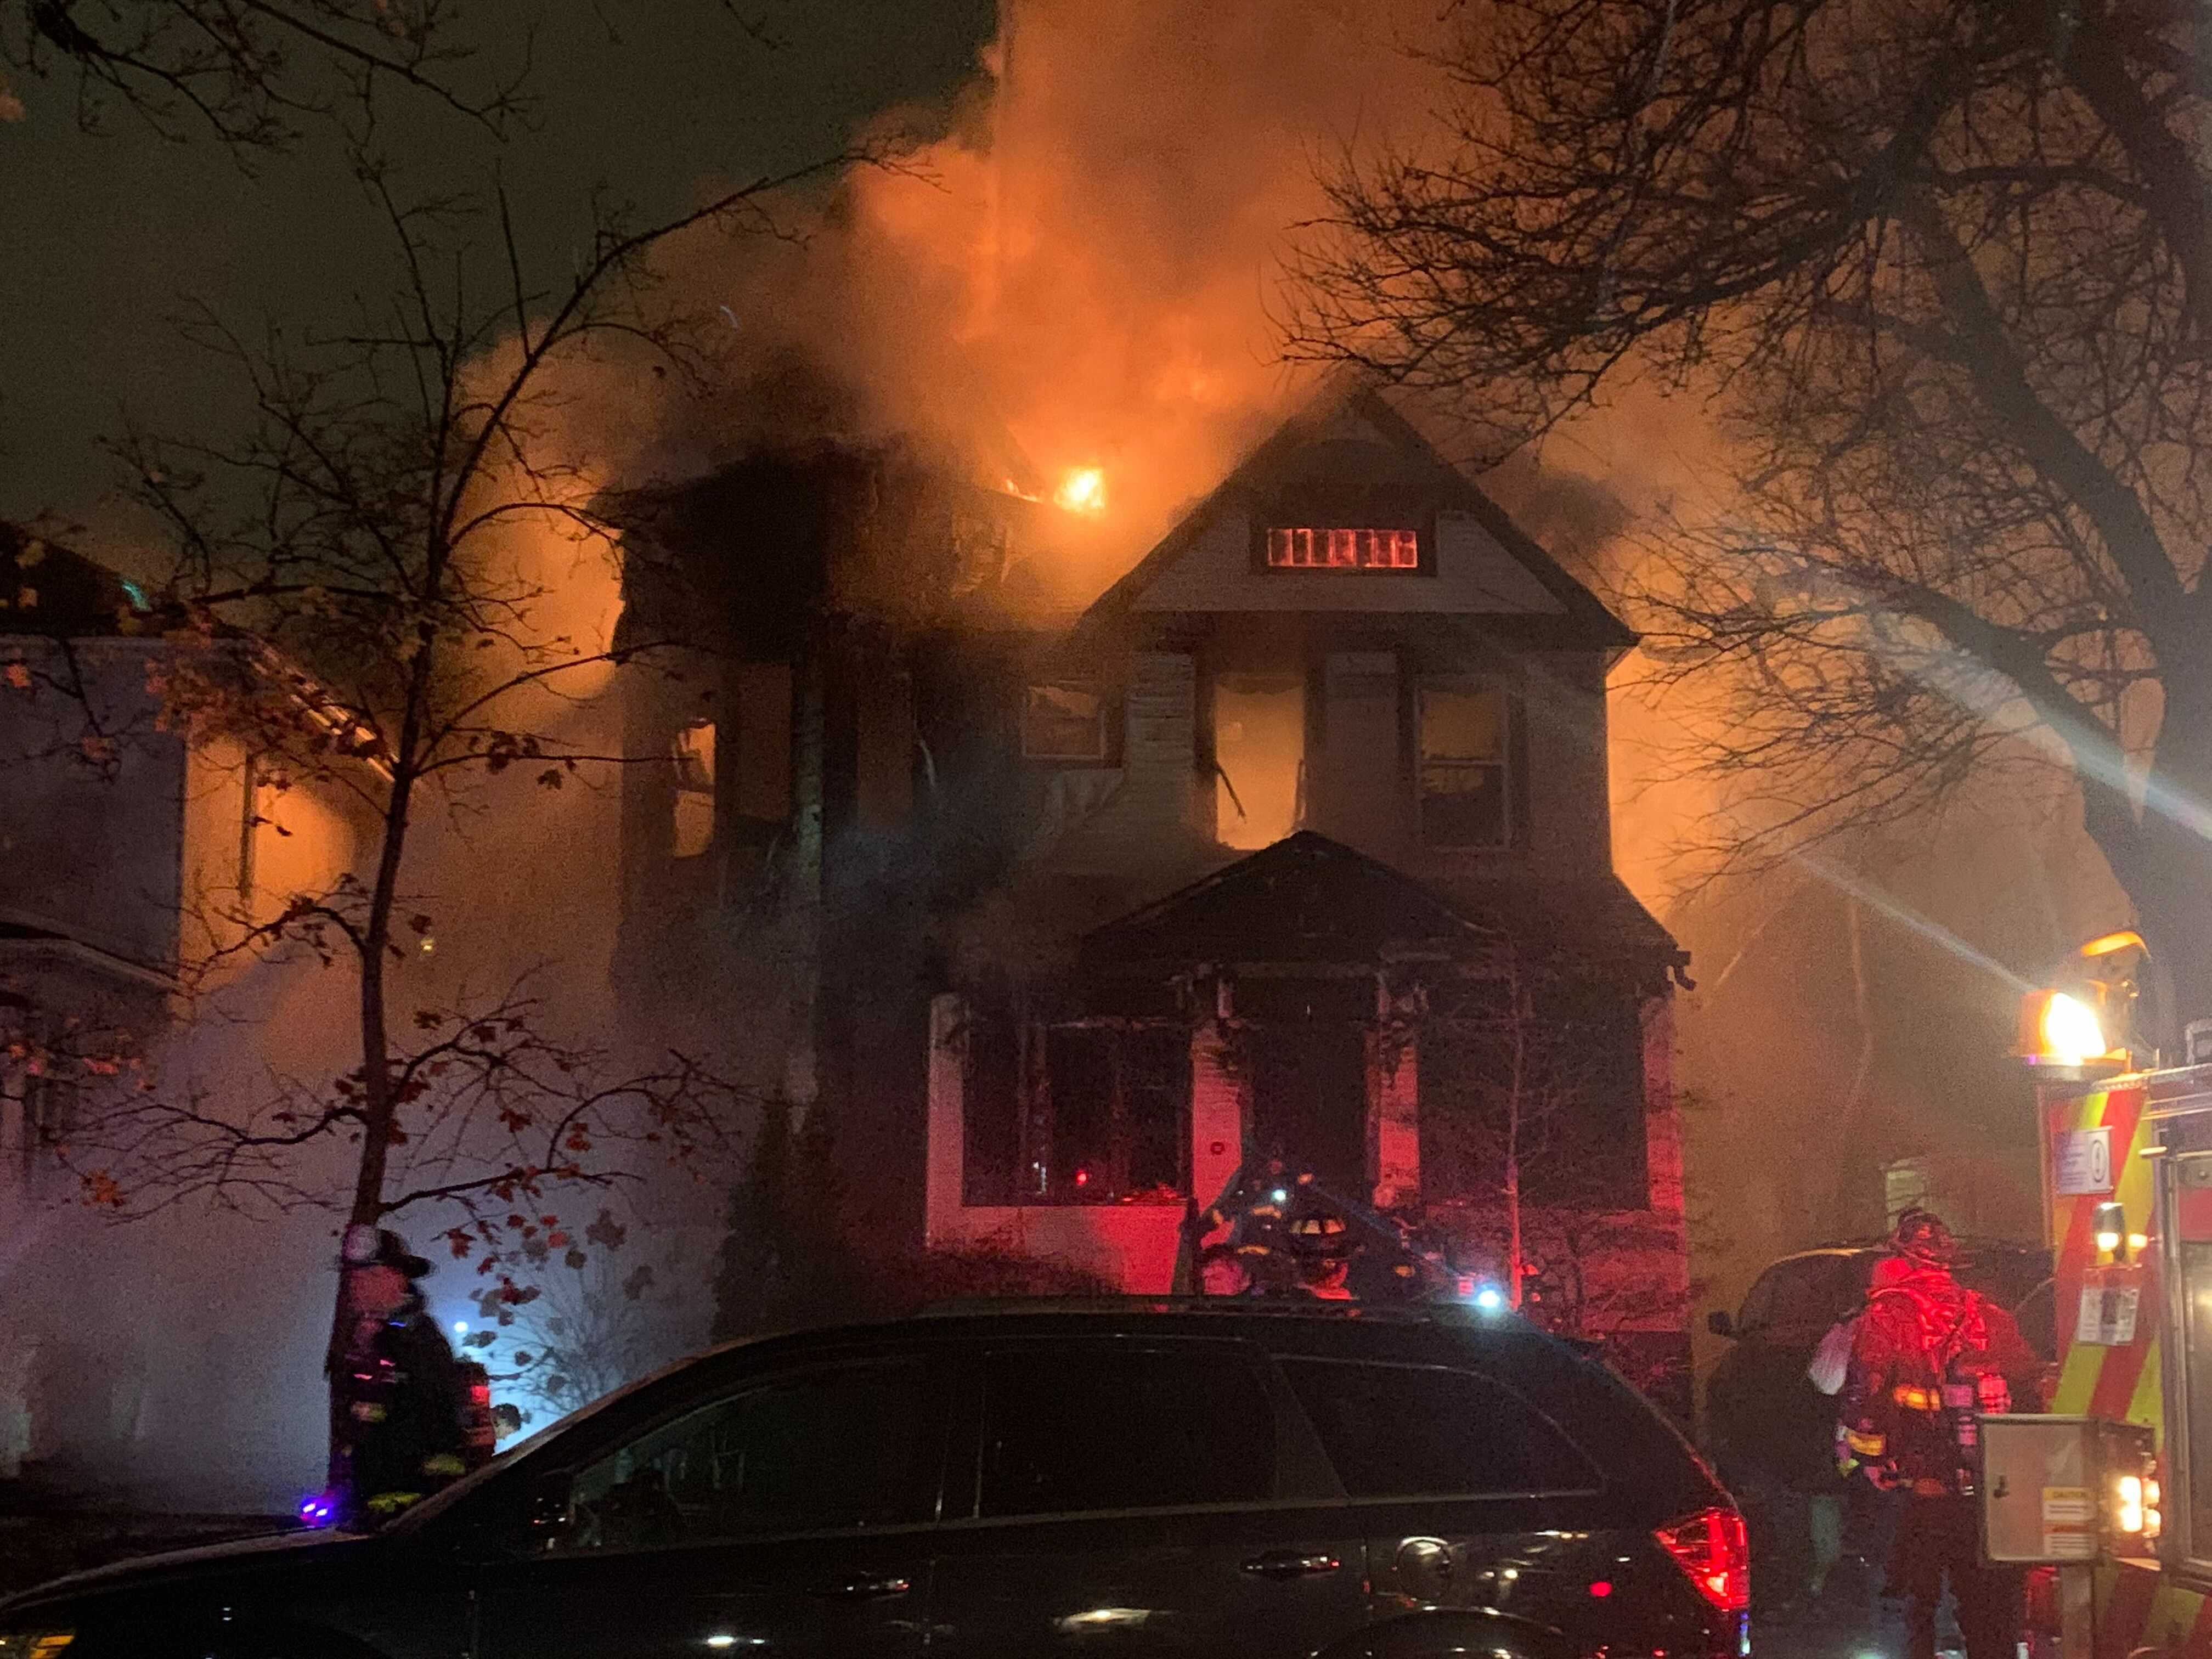 An elderly man and woman died Thursday night in a house fire in the 4200 block of North Kildare in the Old Irving Park neighborhood on the Northwest Side of Chicago.